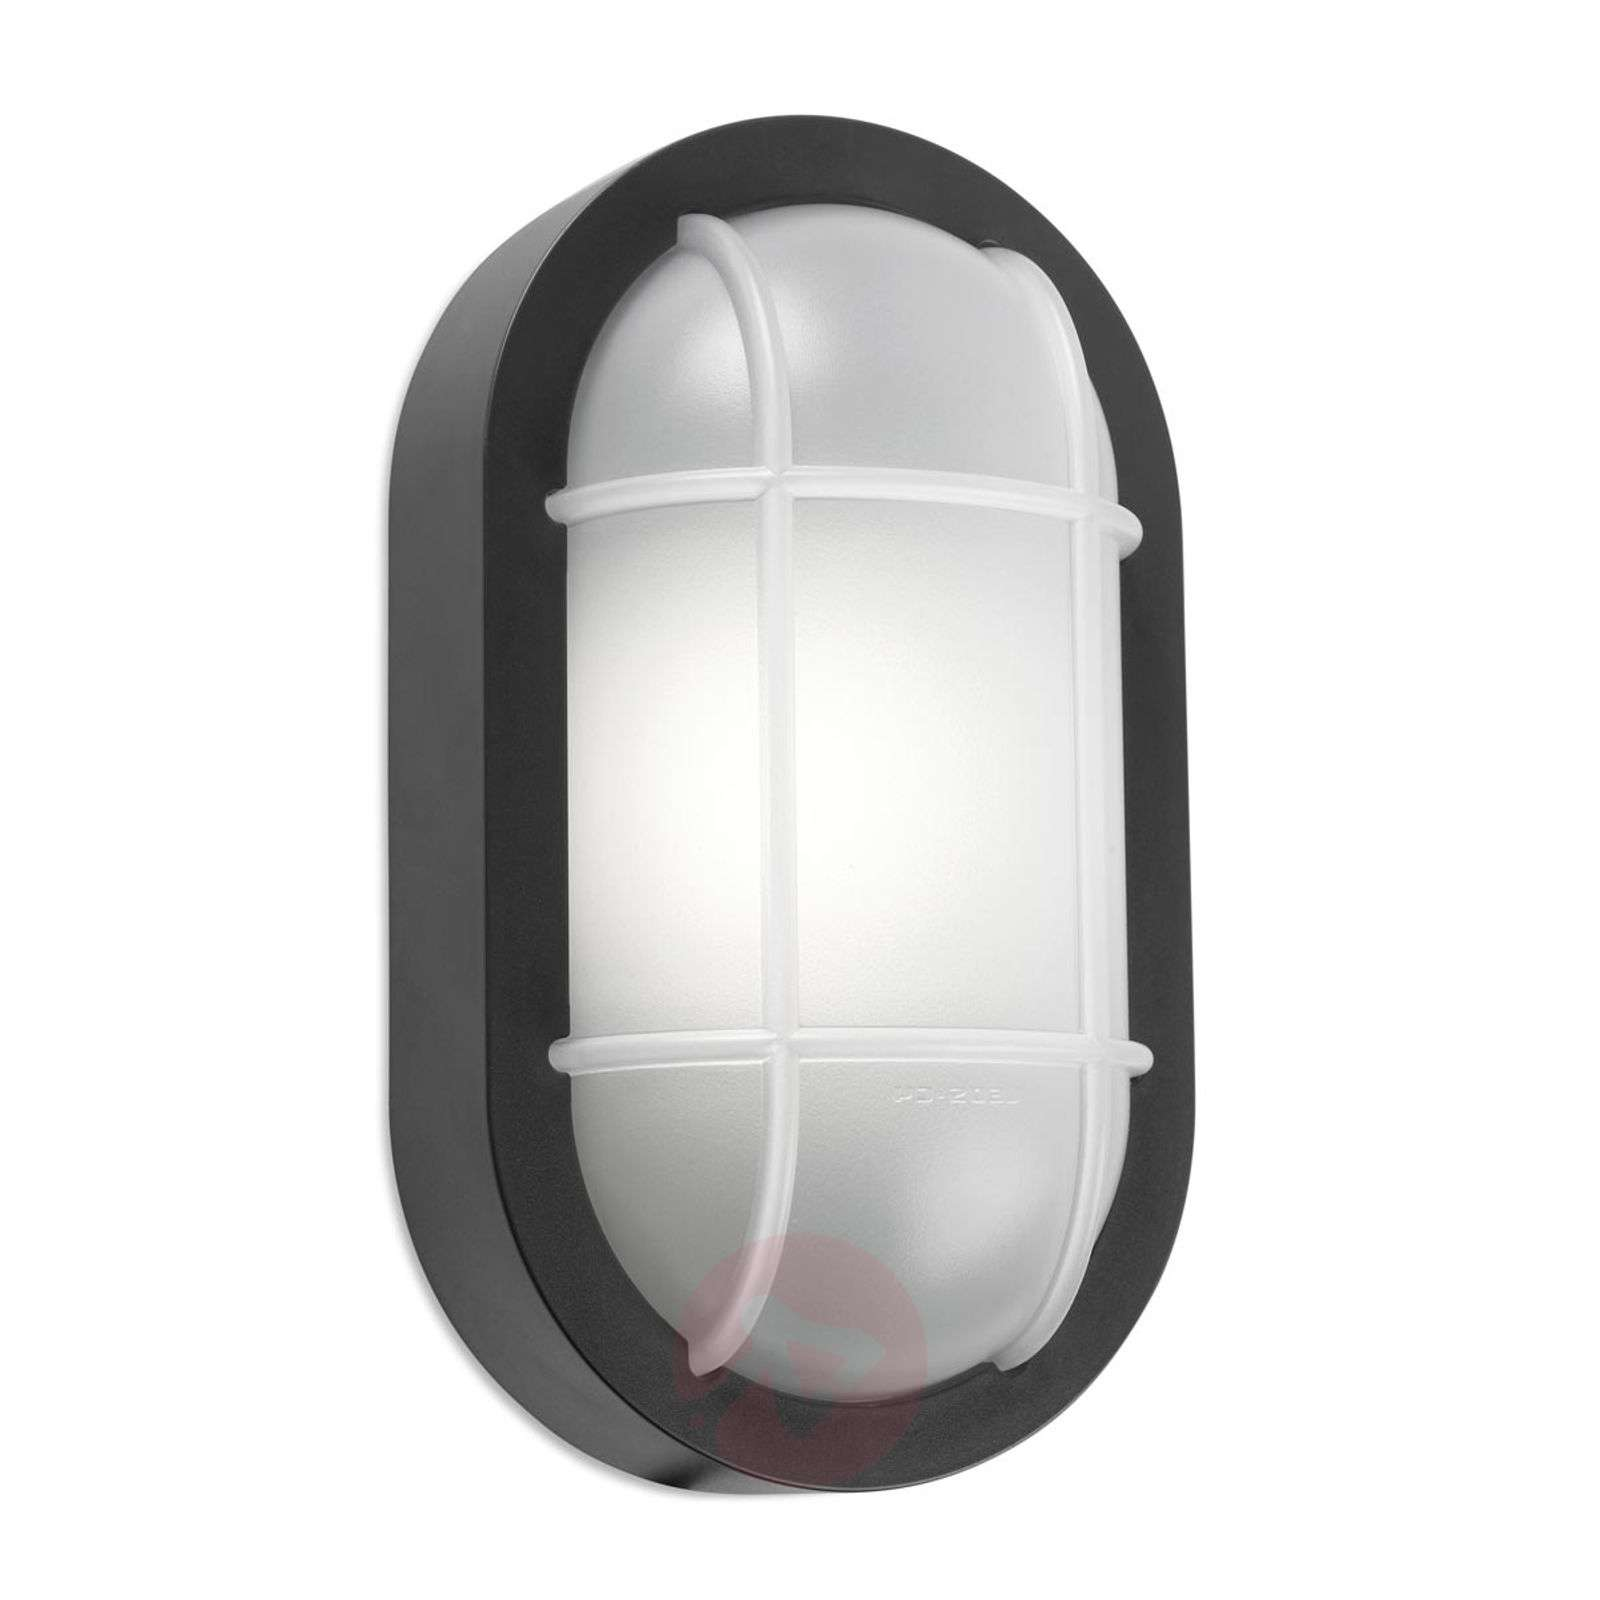 Acquista lampada led da cantina o garage turtled lampade.it